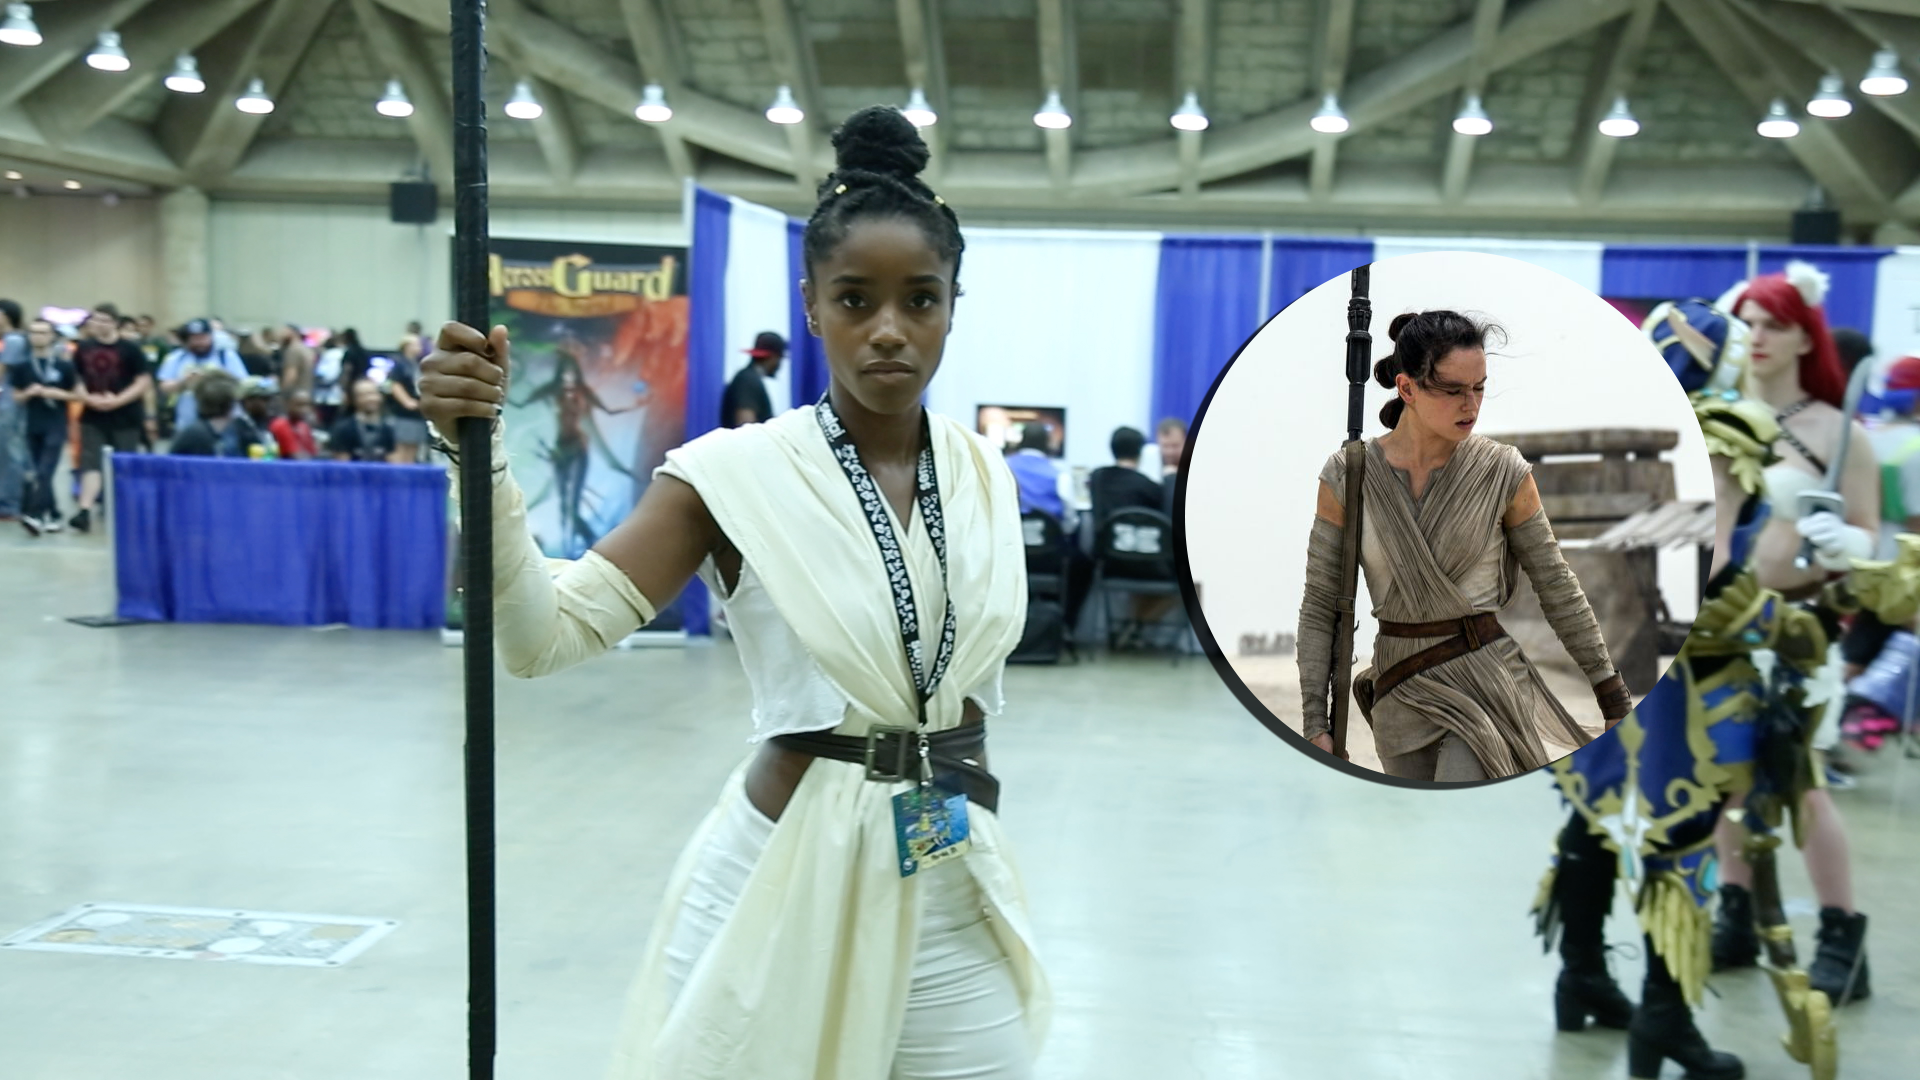 A cosplayer dresses as Rae from Star Wars